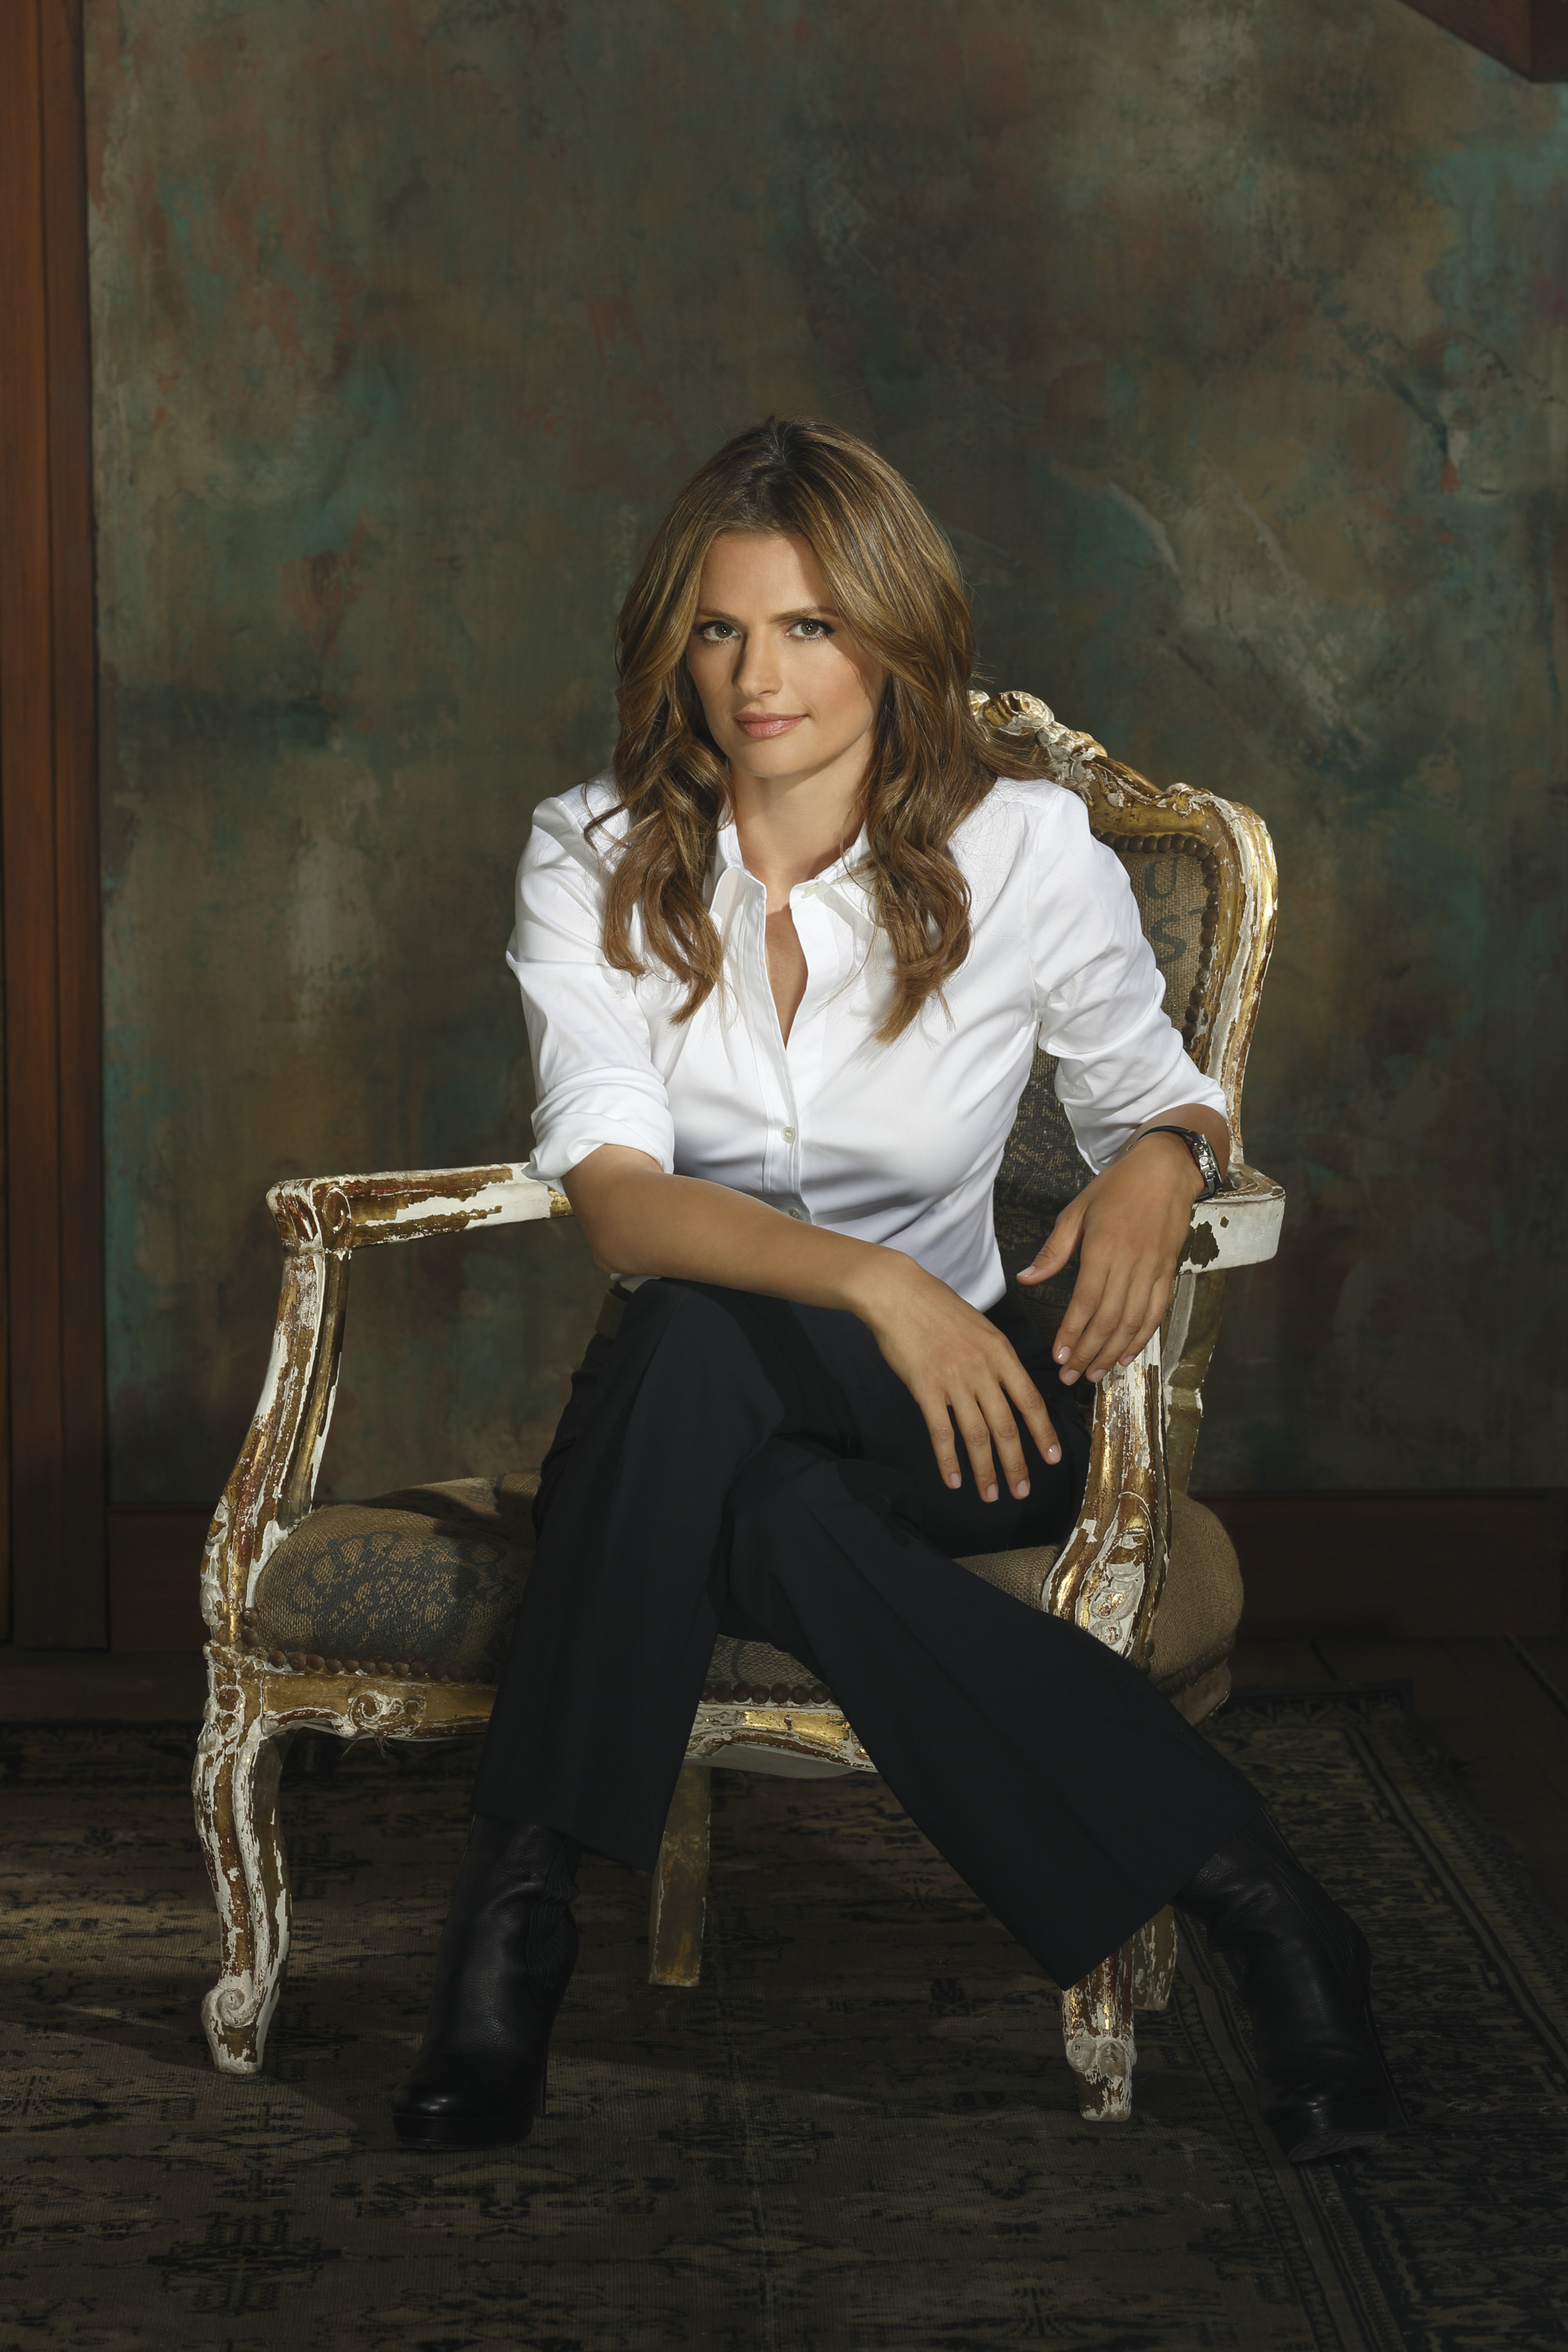 Castle Season 6 Cast Photos Give Me My Remote Give Me My Remote Paley television festival featuring chuck. https www givememyremote com remote 2013 09 04 castle season 6 cast photos nggallery image castle 242